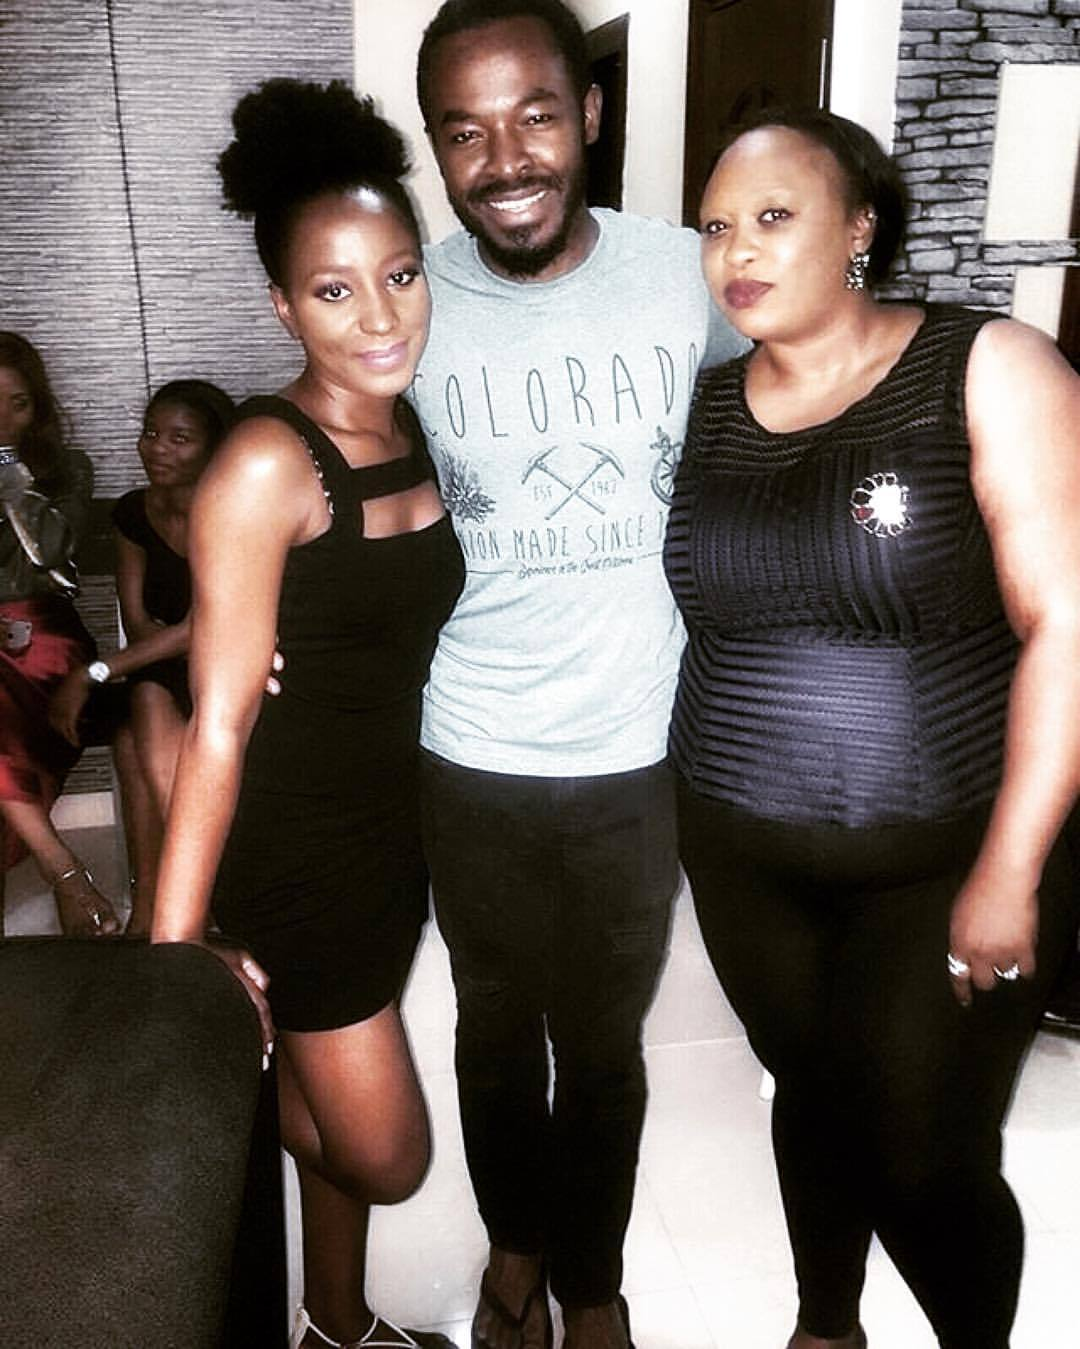 Thank you @ada_ukeje for the picture. Yayyy I saw my @erumsie  yesterday  👯 AND @ibkukeje AND @octhegreatukeje. Awesome!